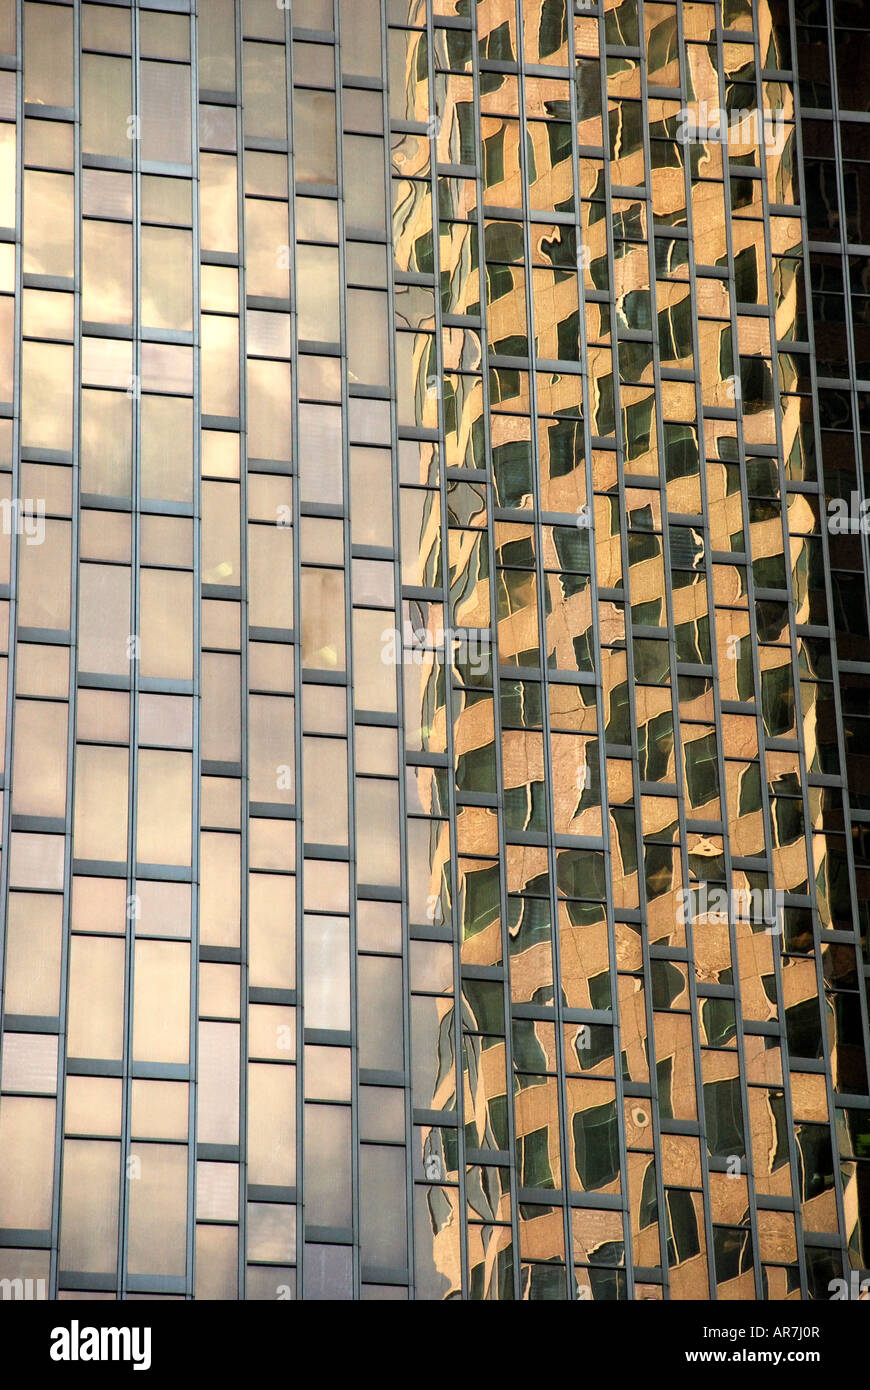 reflections in office block windows. - Stock Image